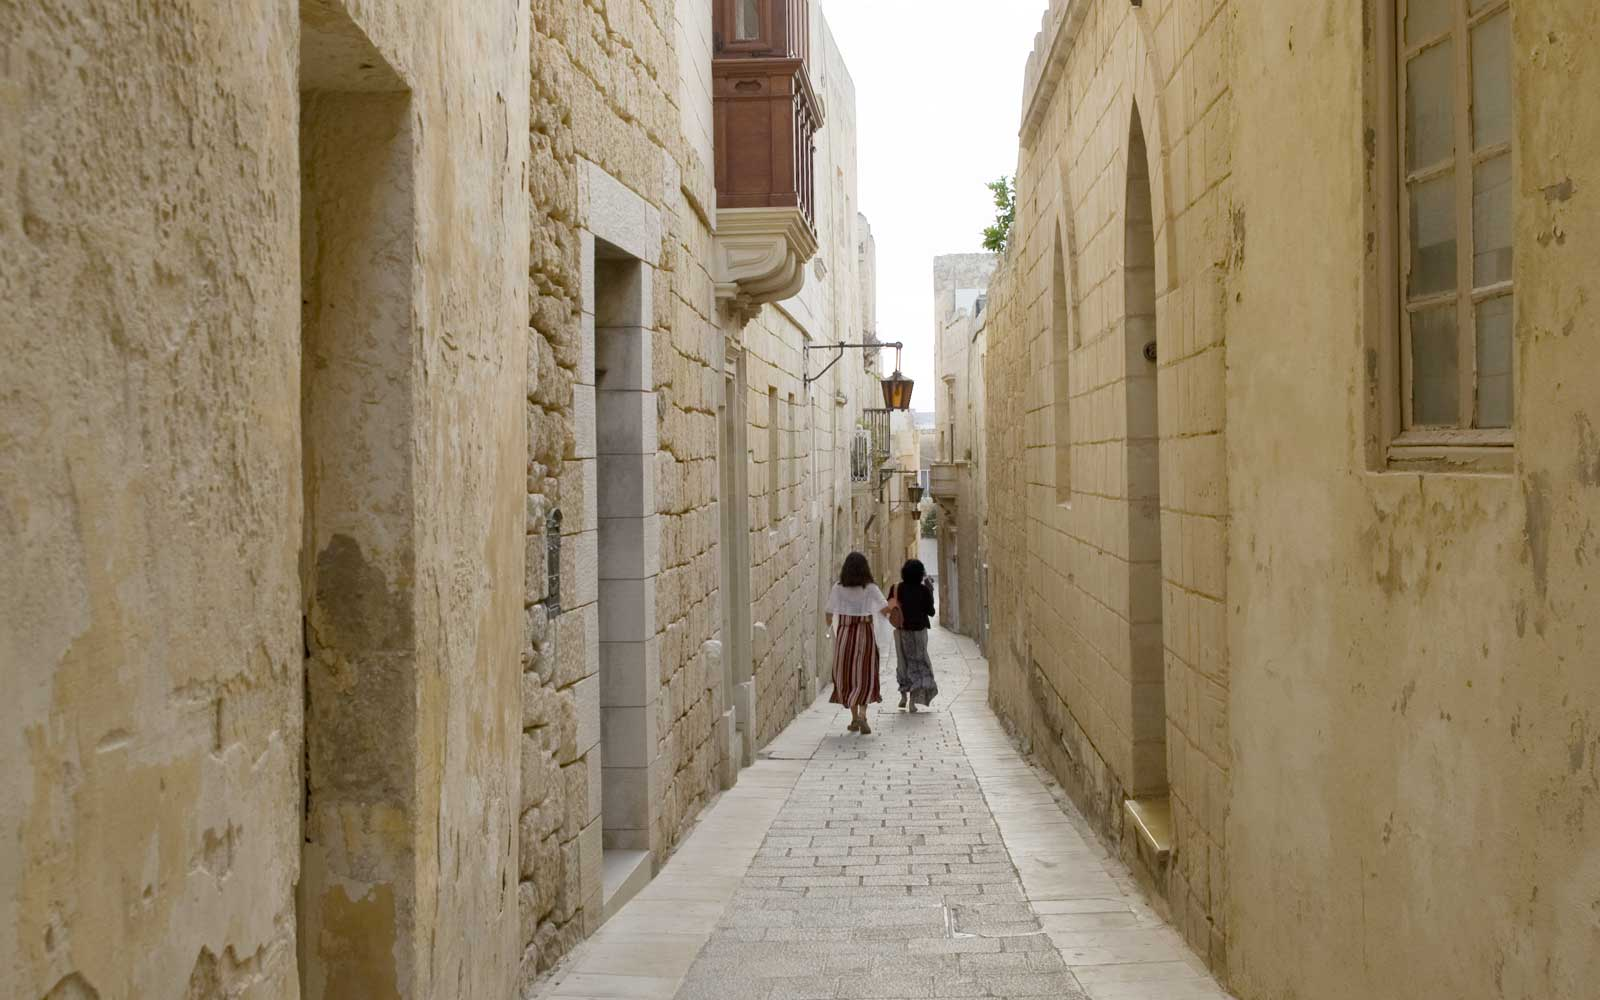 The quiet streets of the Mdina area of Malta